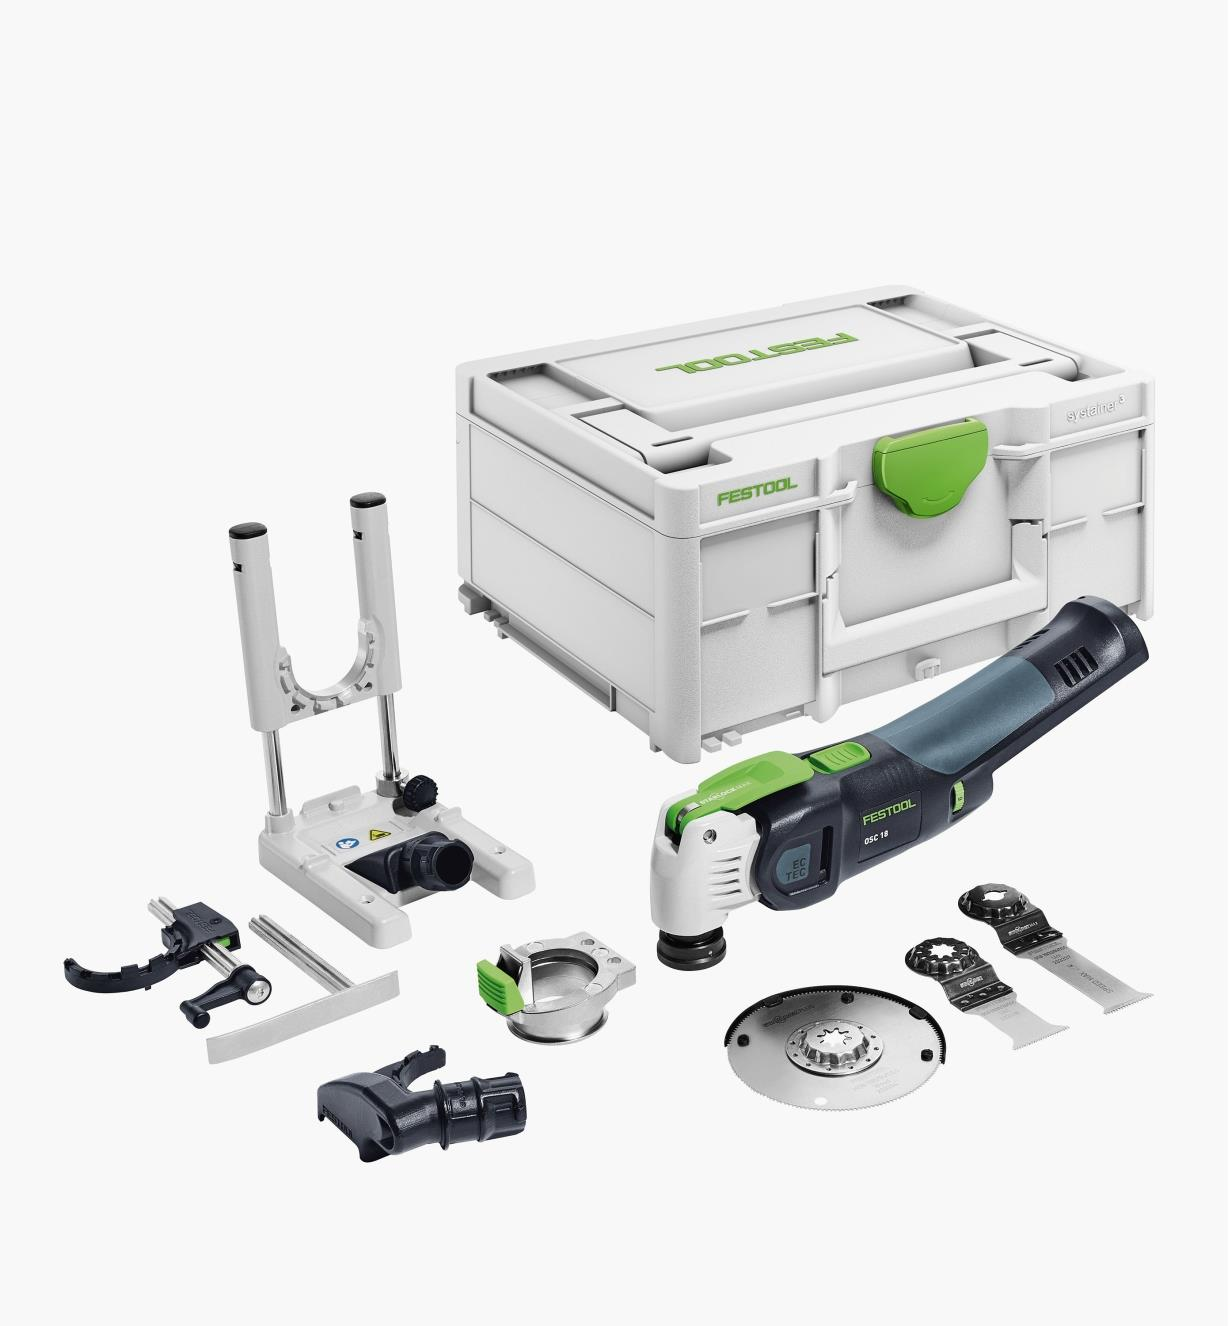 ZC576588 - Festool Vecturo OSC 18 Cordless Oscillating Tool Basic Set